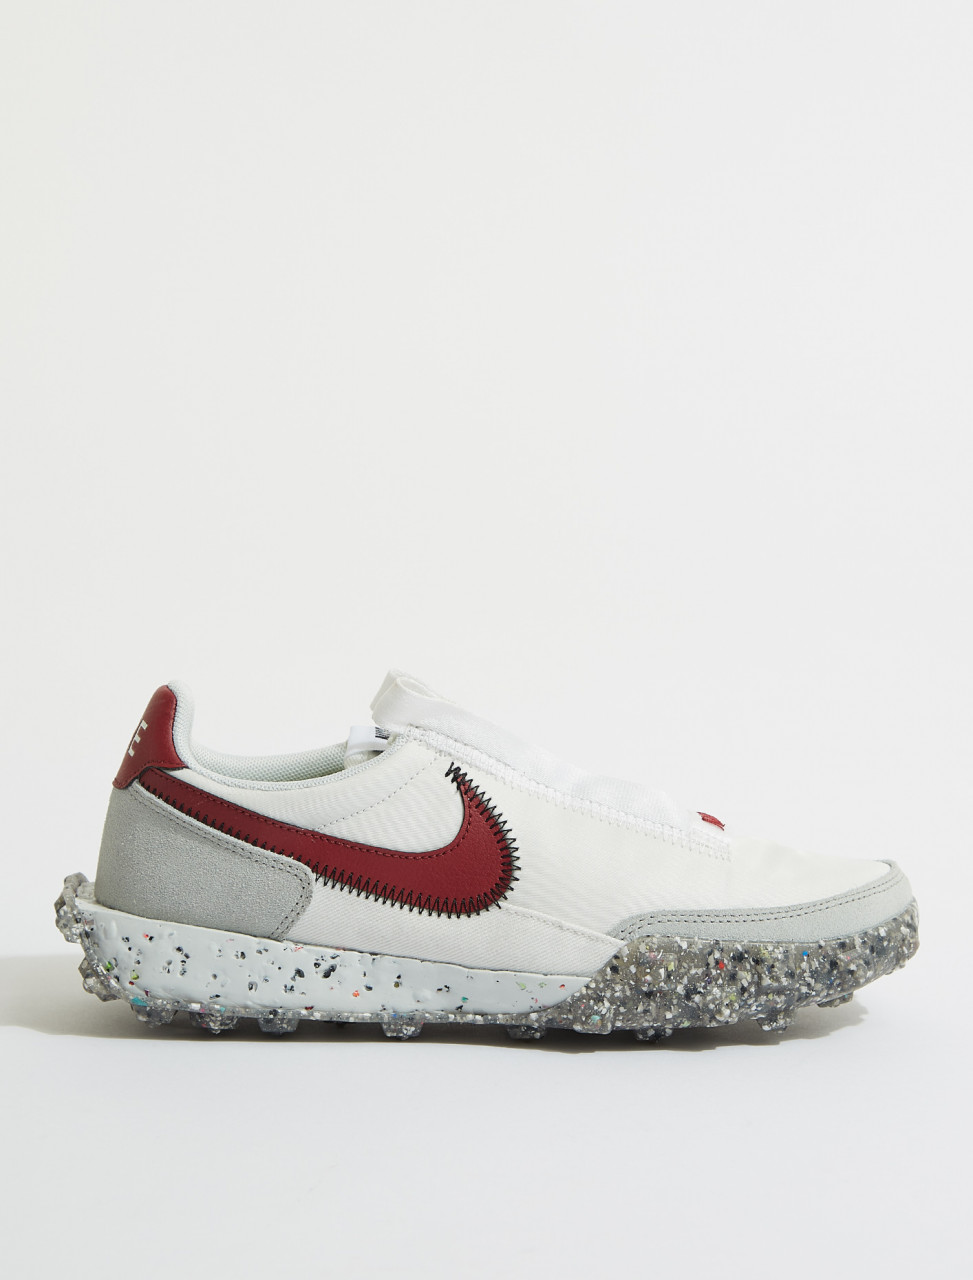 CT1983-103 NIKE WAFFLE RACER CRATER IN SUMMIT WHITE & RED